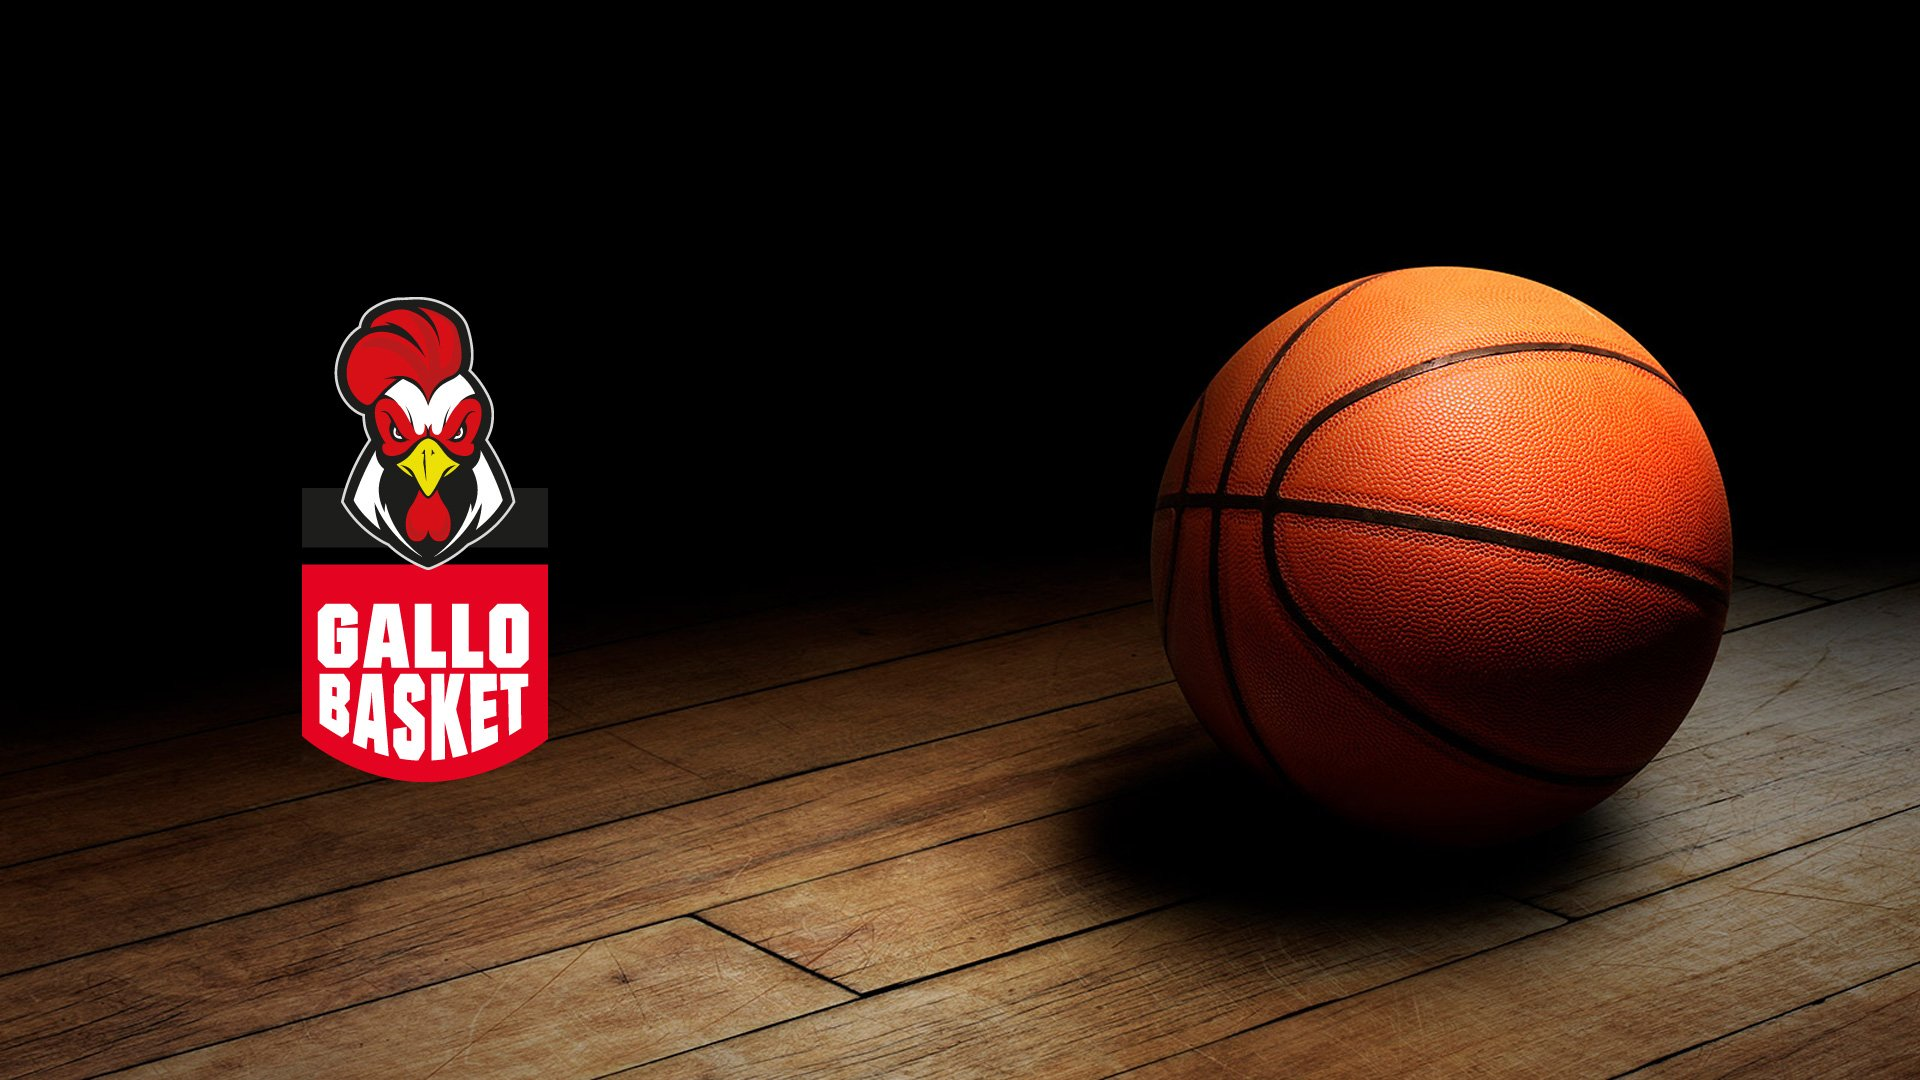 gallo-basket-header-black